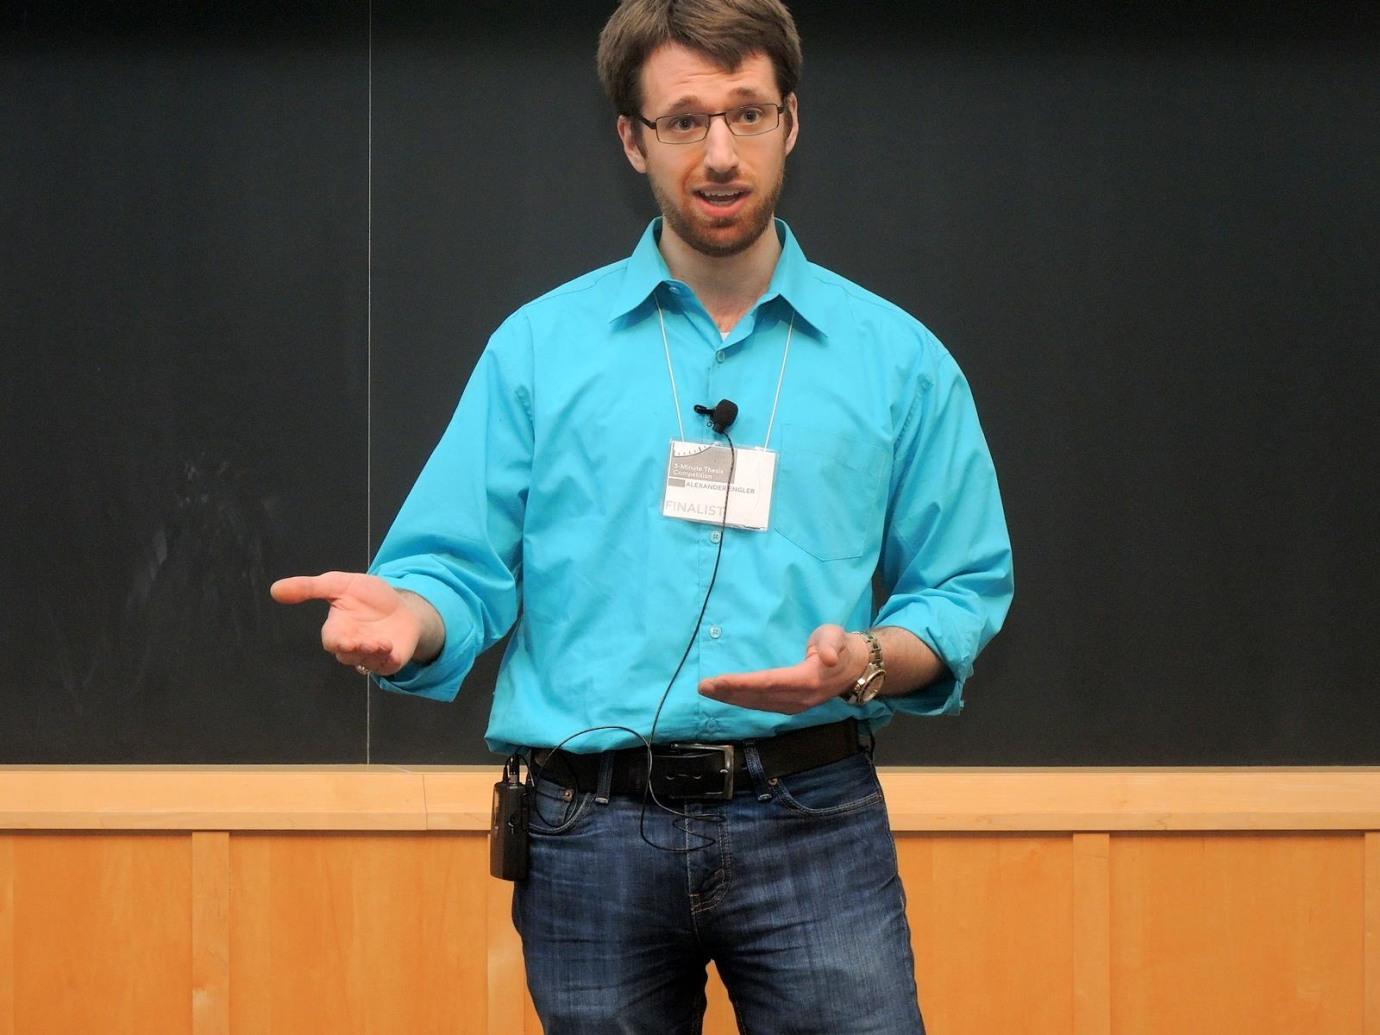 Alexander Engler, a student in biomedical engineering, described how to make a new lung.